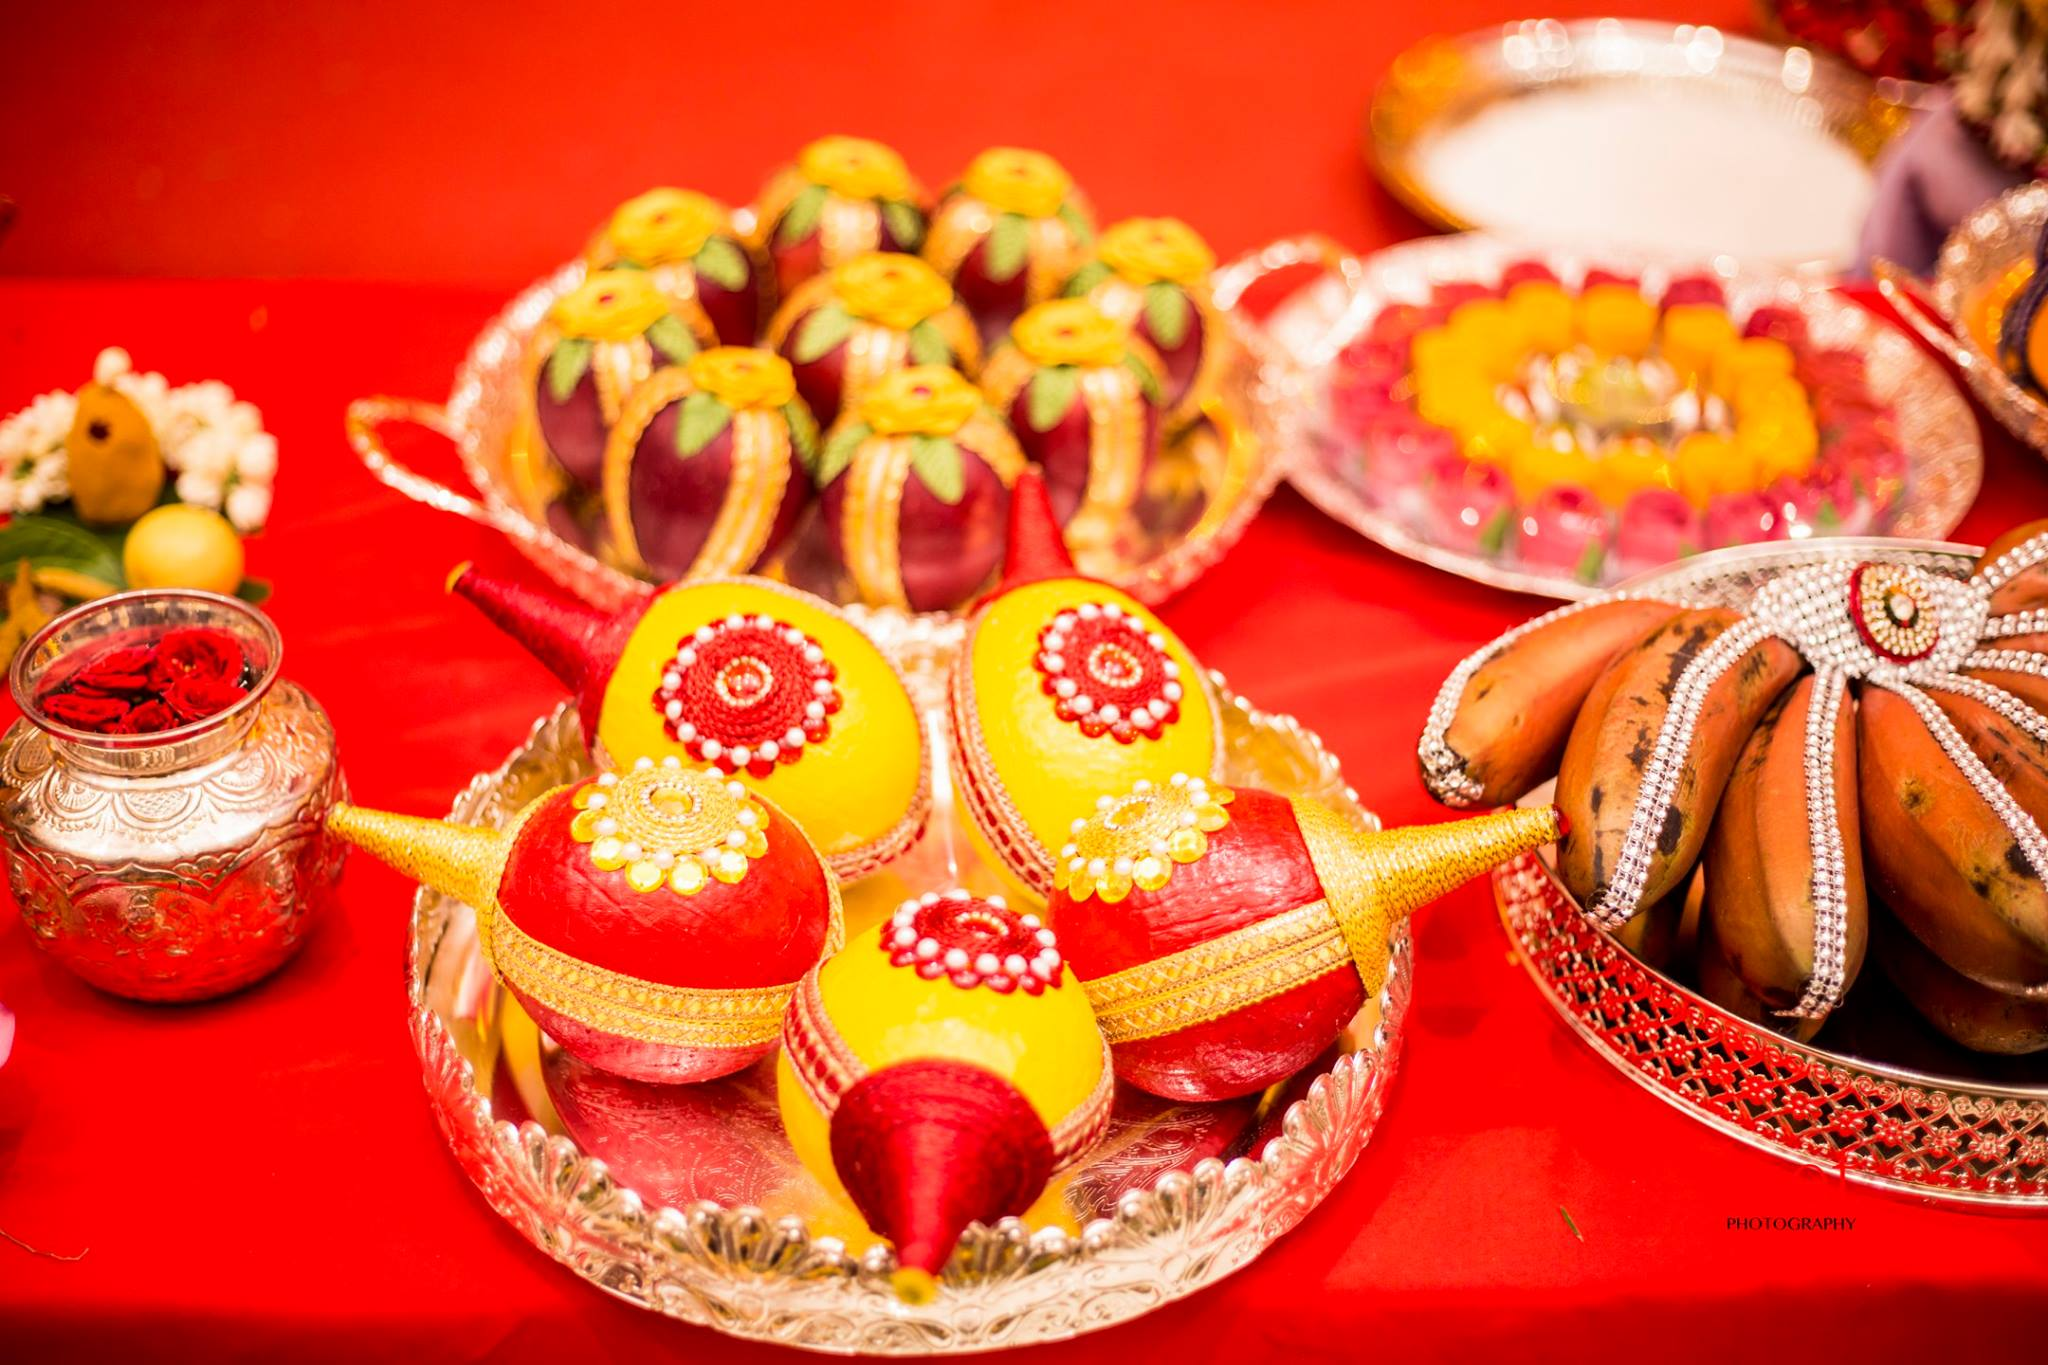 Yellow and red painted Coconuts & Fruit Decoration for Wedding | Fruit Decoration Plate Designs ...